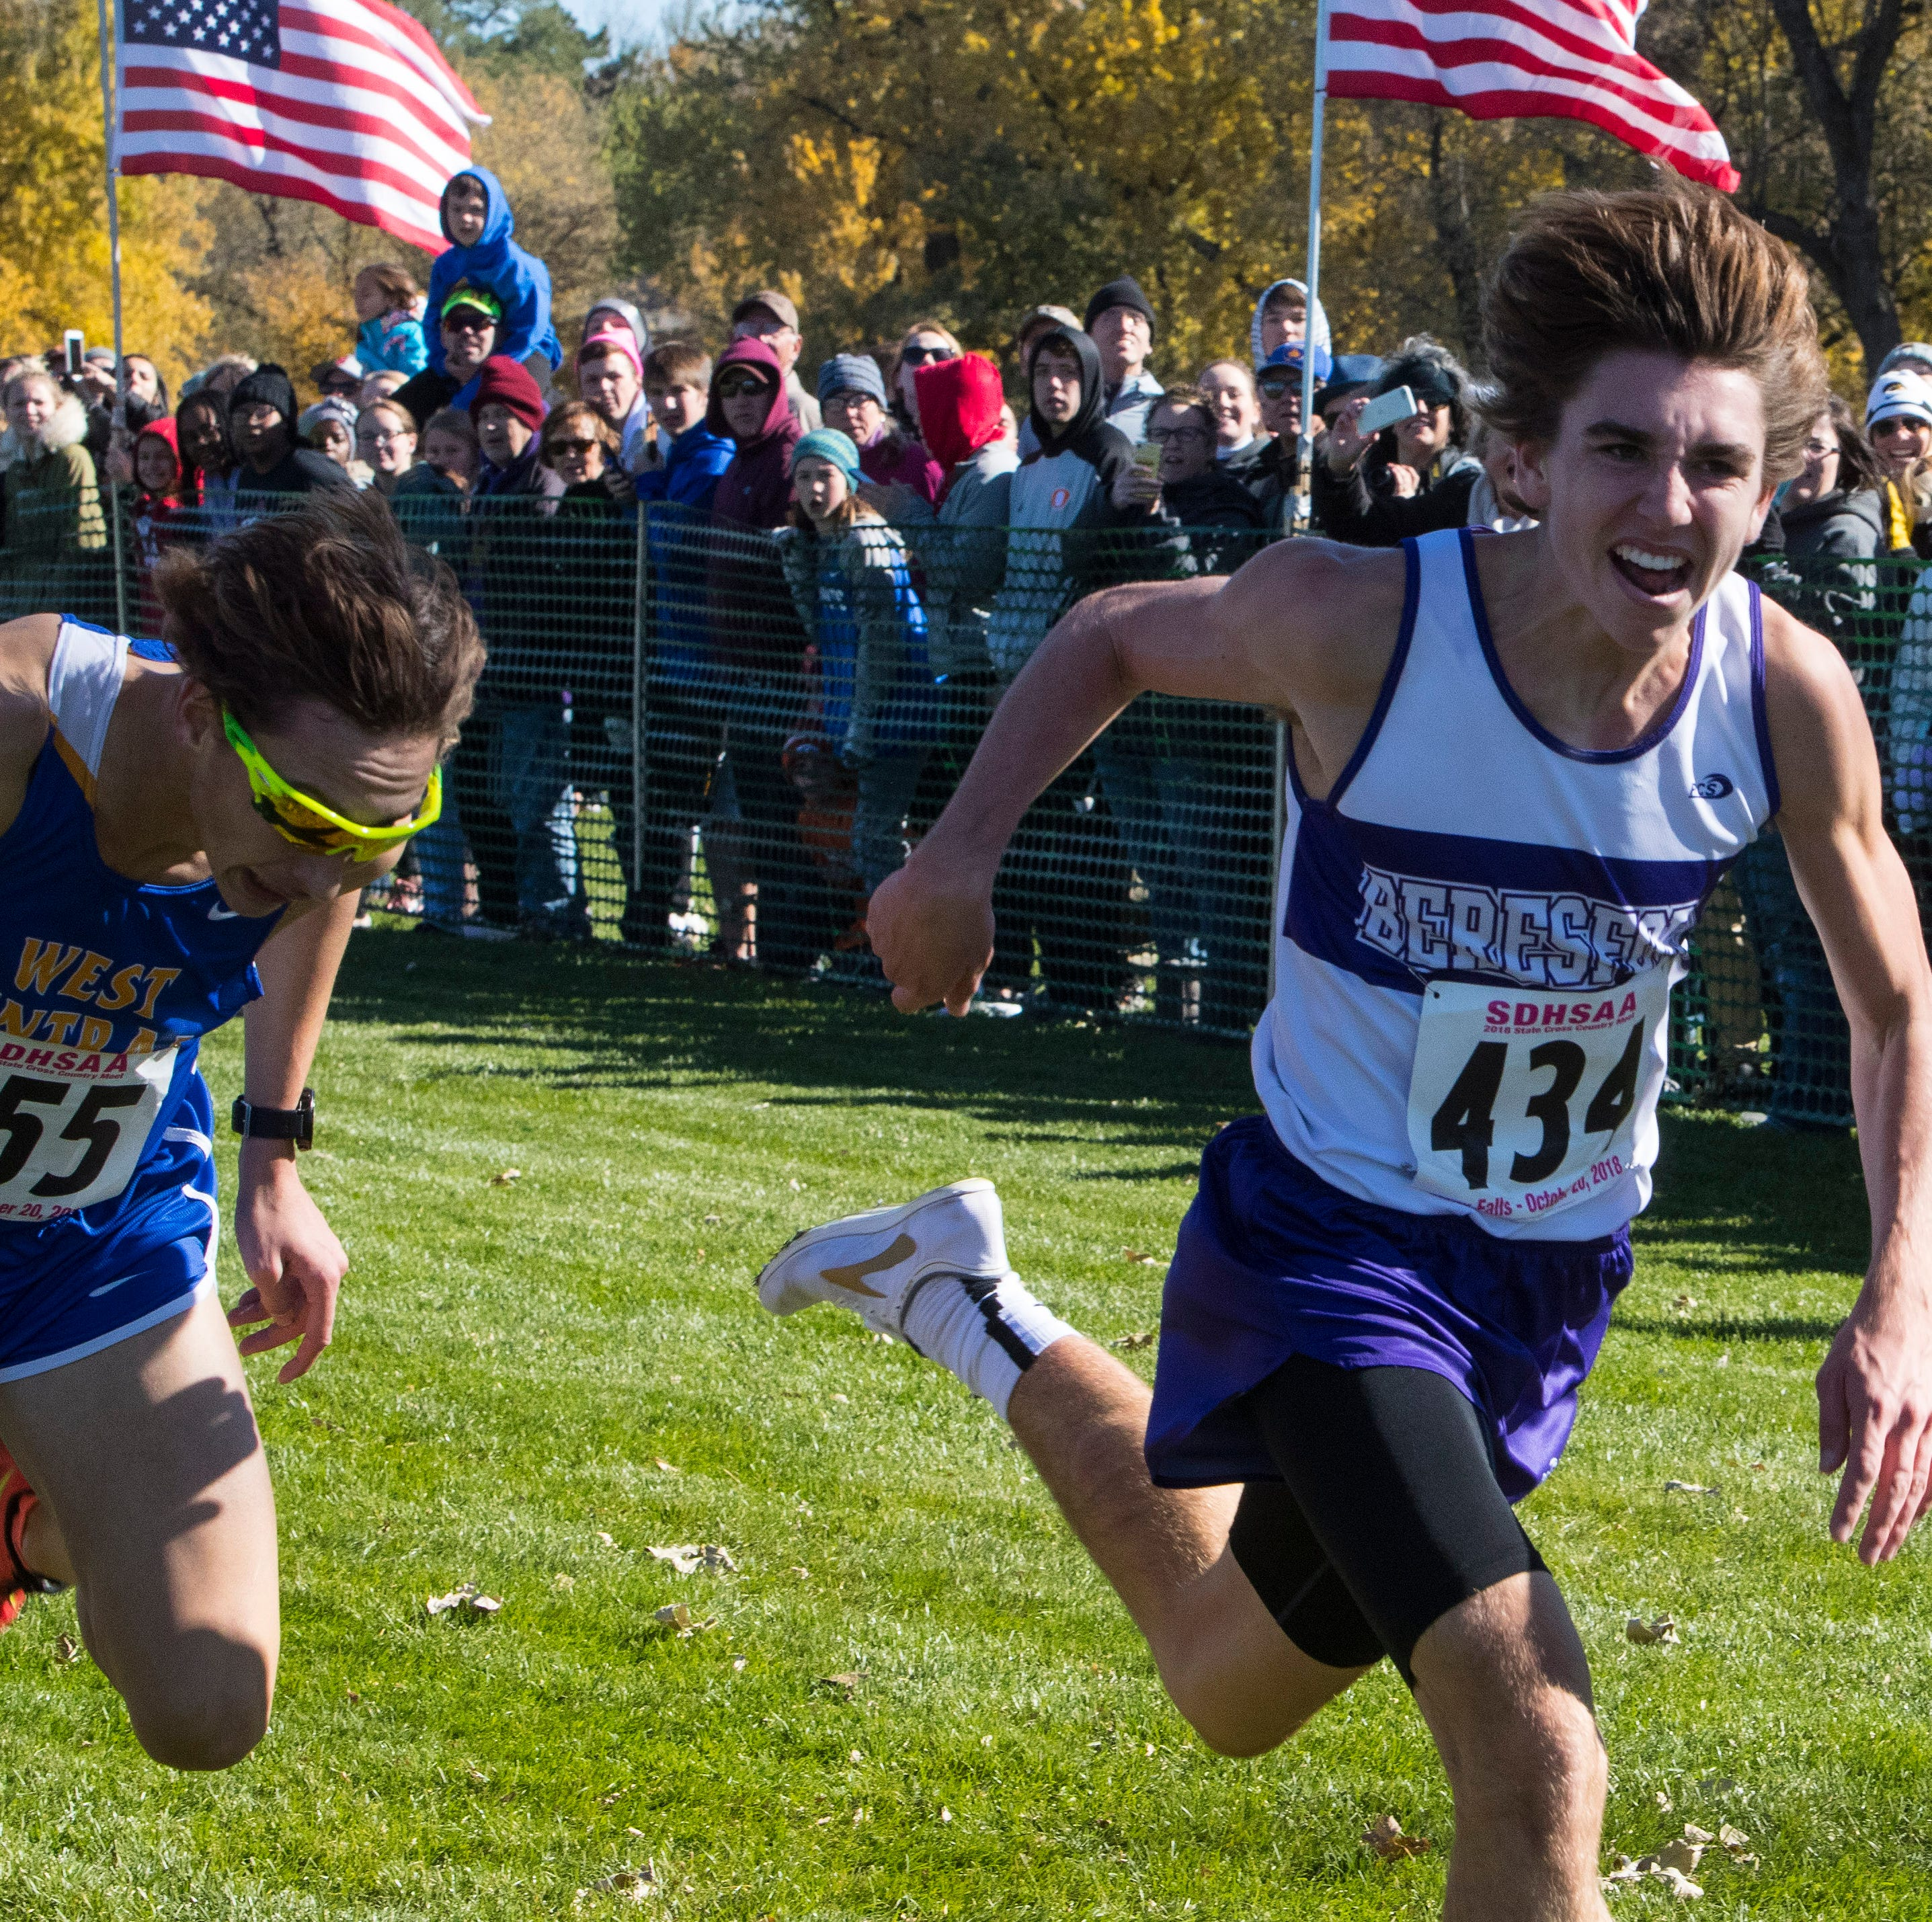 Alec Atwood edges Braden Peters to win 'A' boys title; Ella Byers resets course record